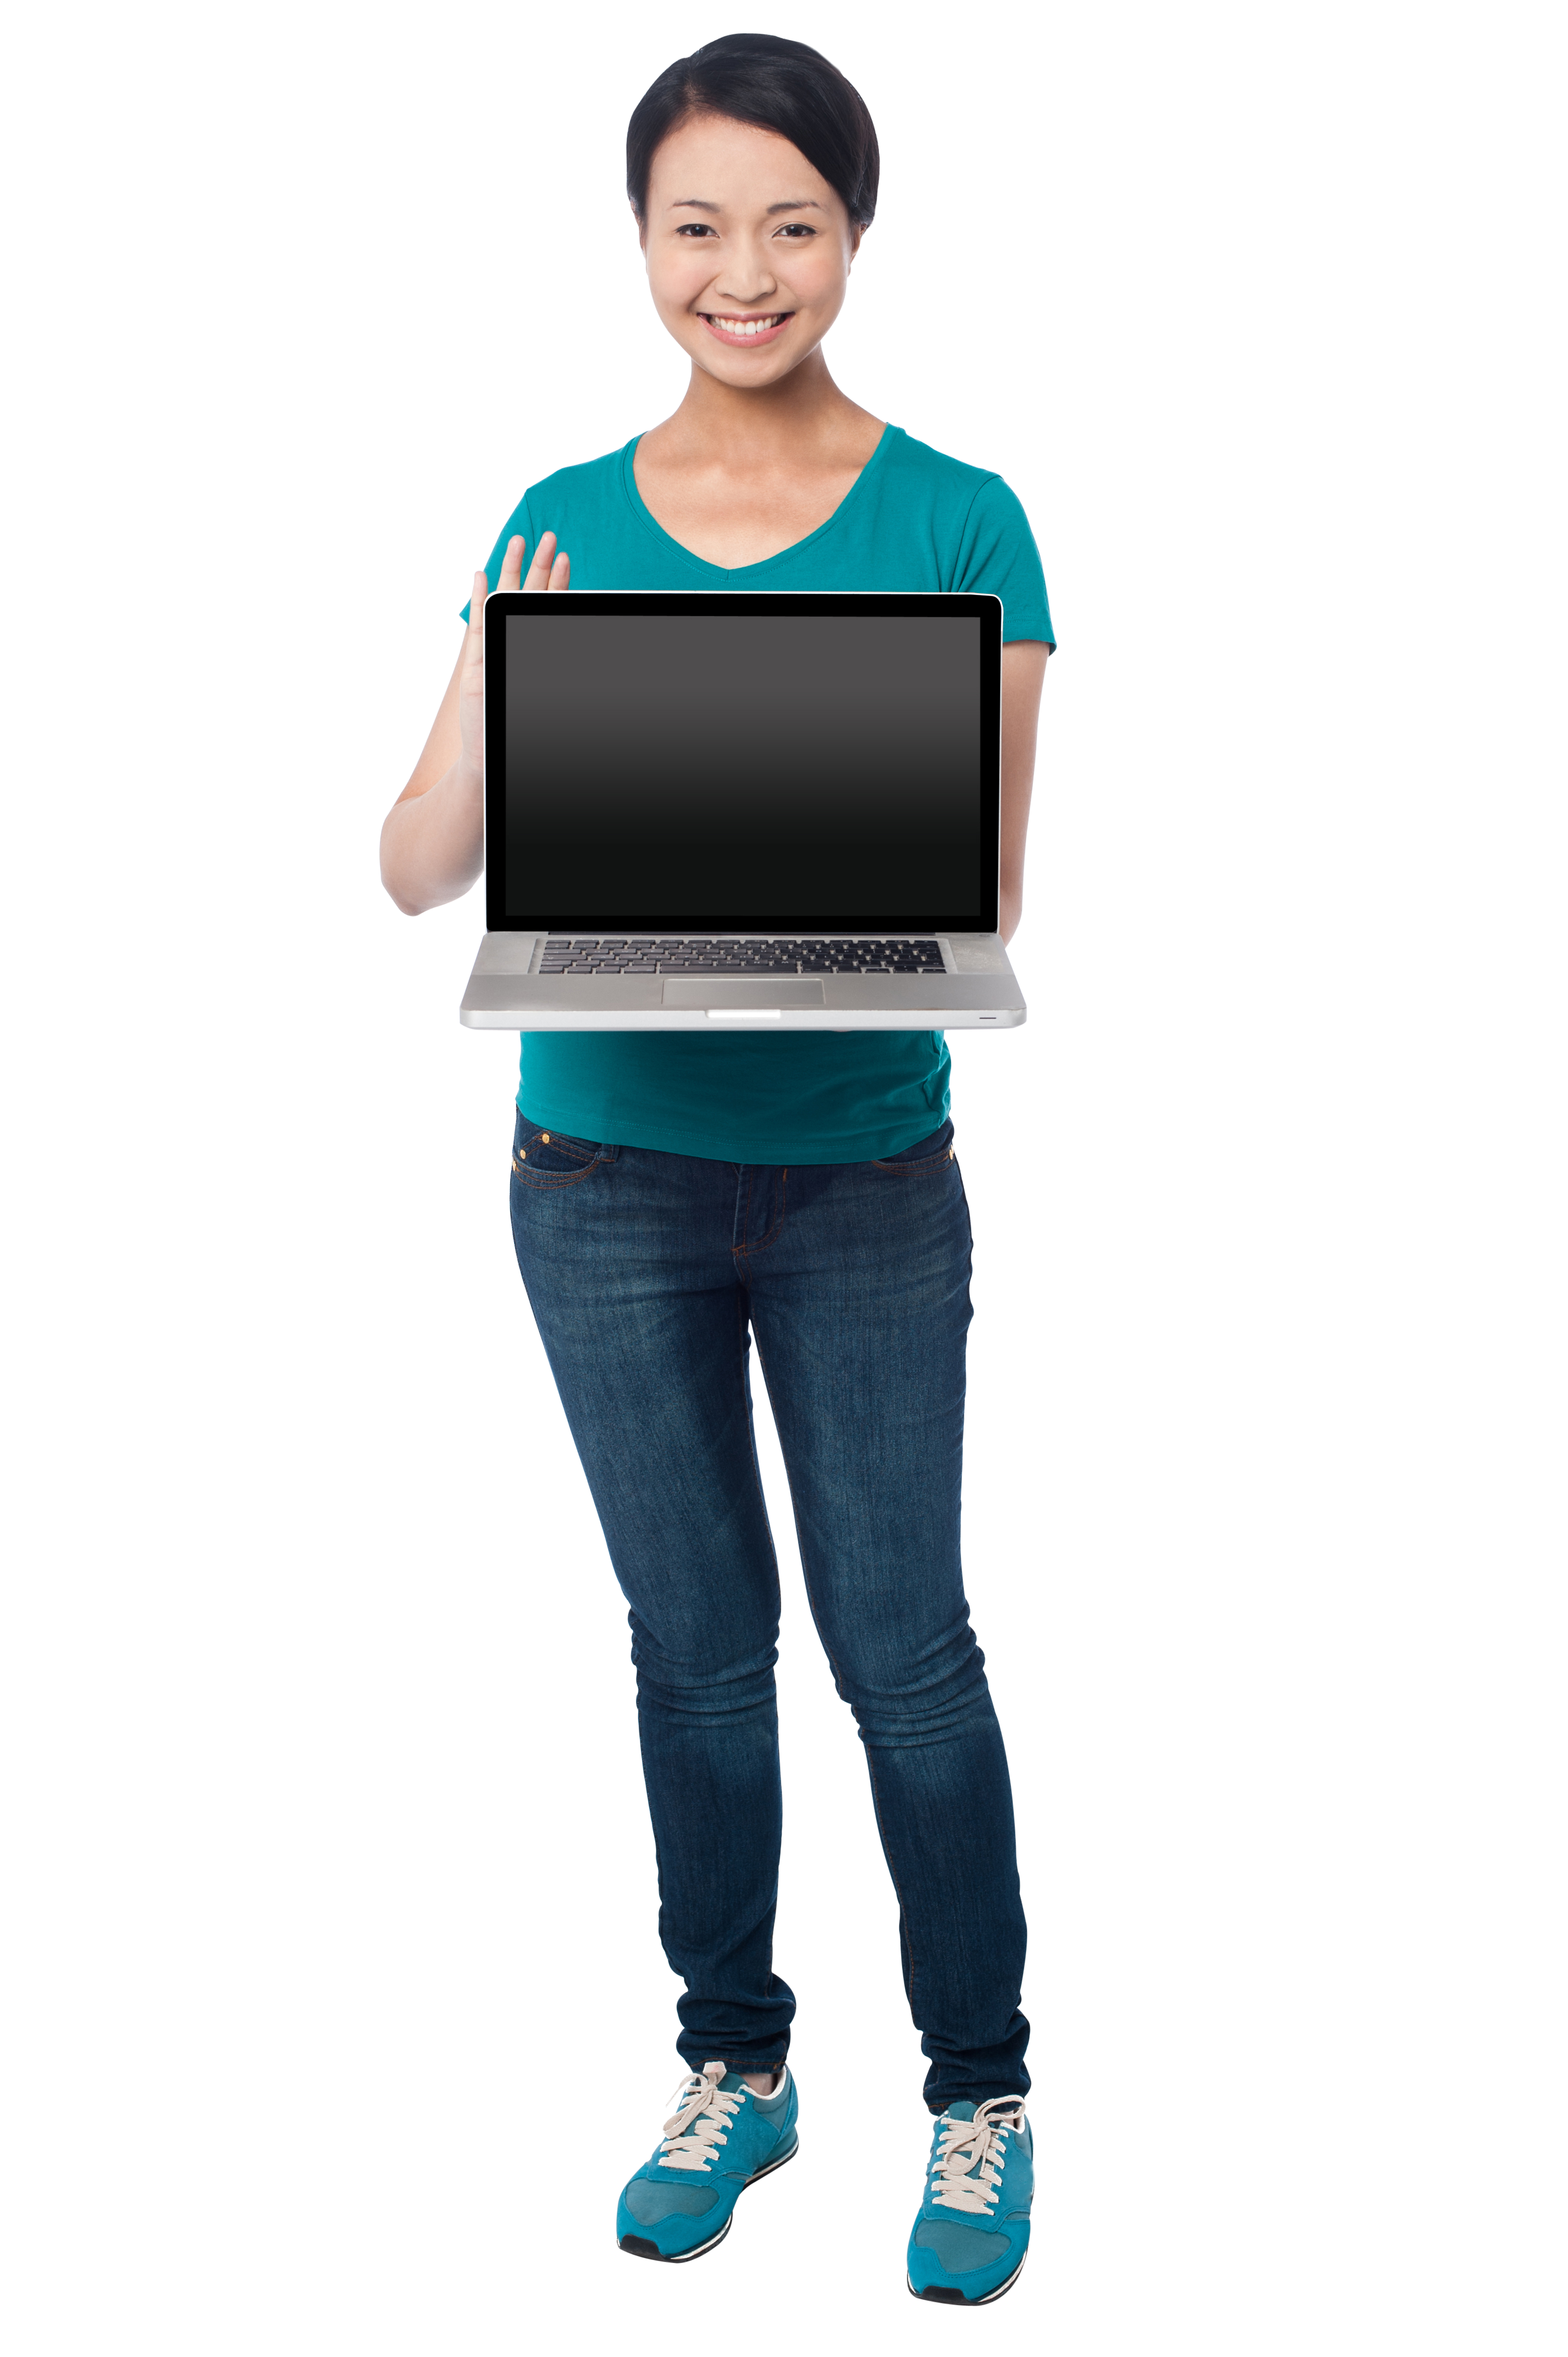 Girl With Laptop PNG Image